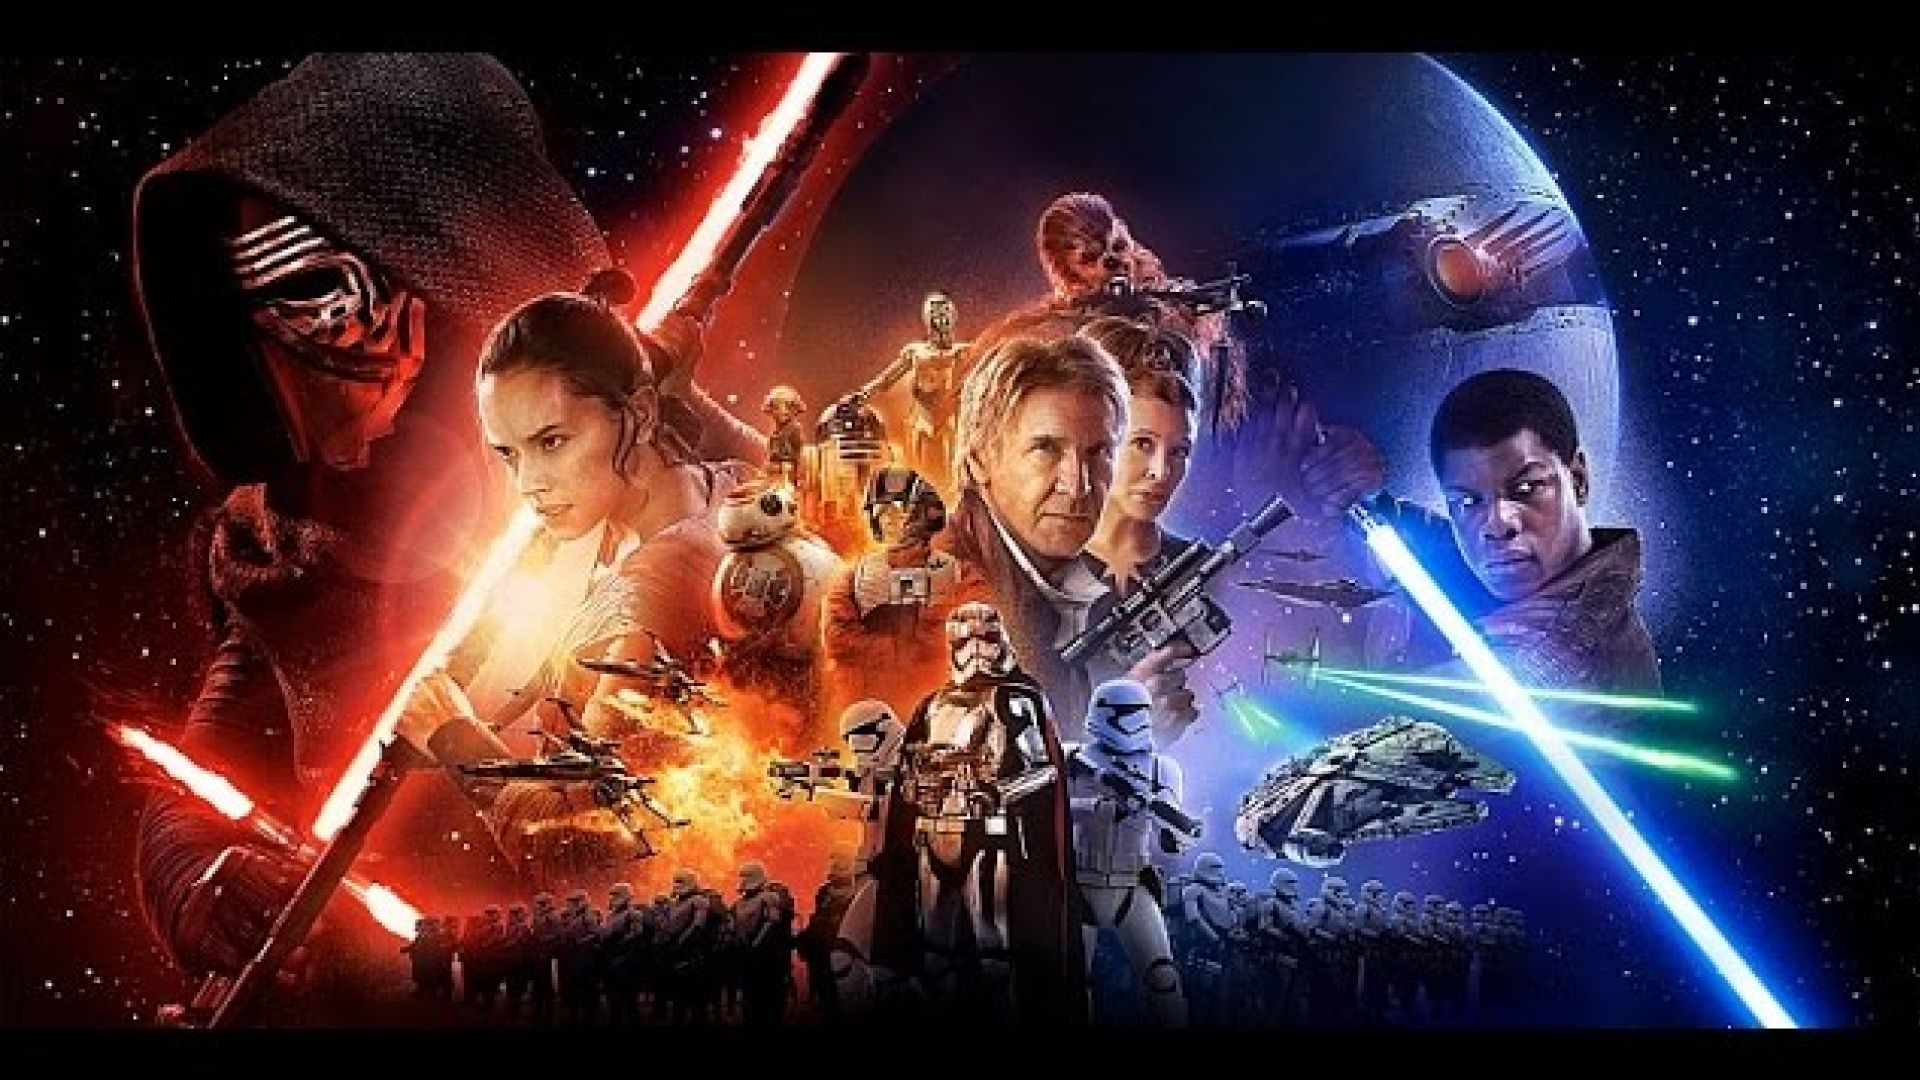 Non Spoiler Review: Star Wars The Force Awakens